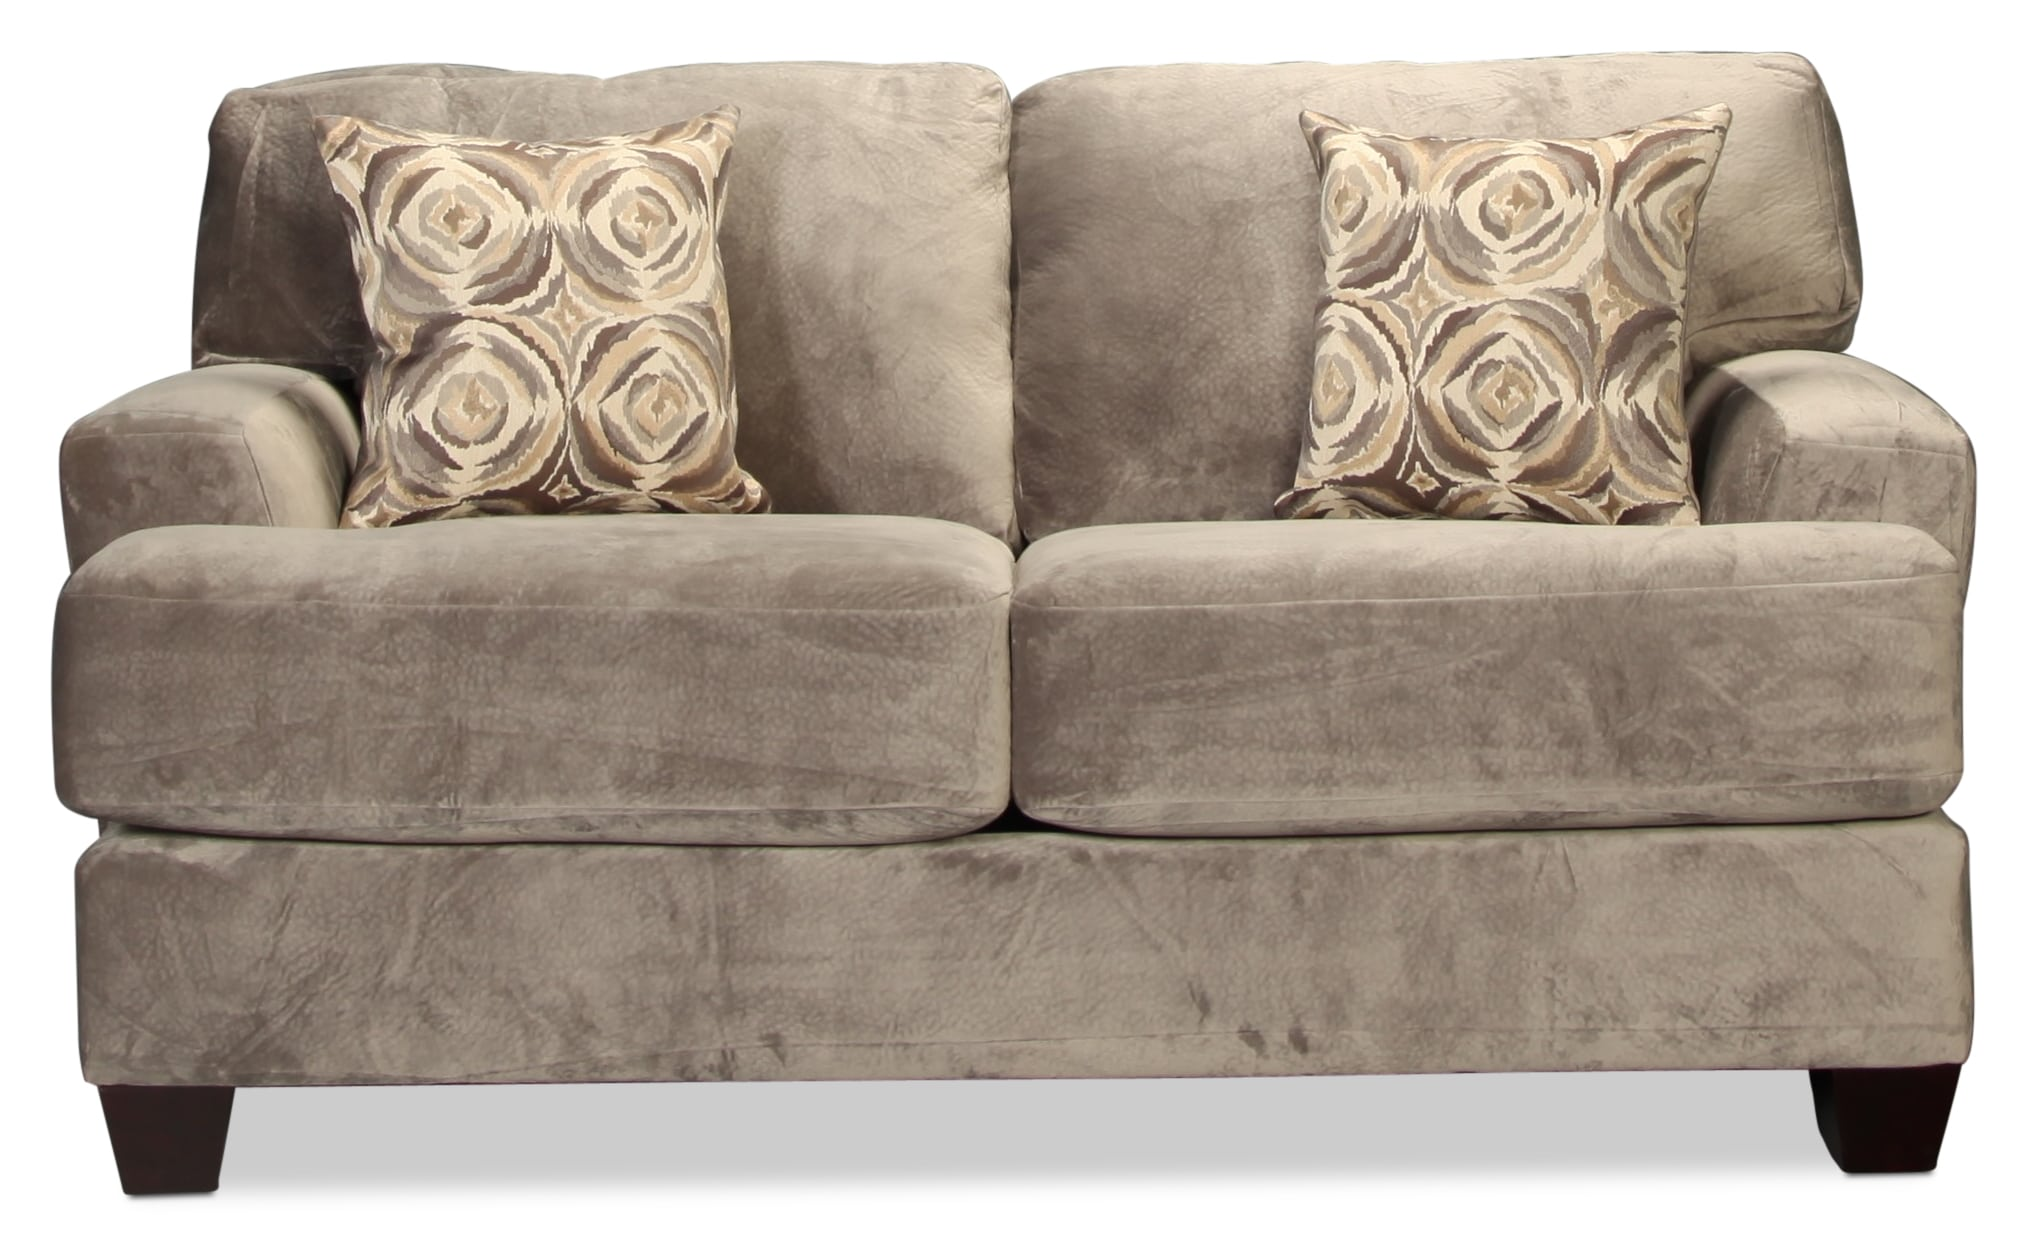 Montclaire Loveseat - Charcoal